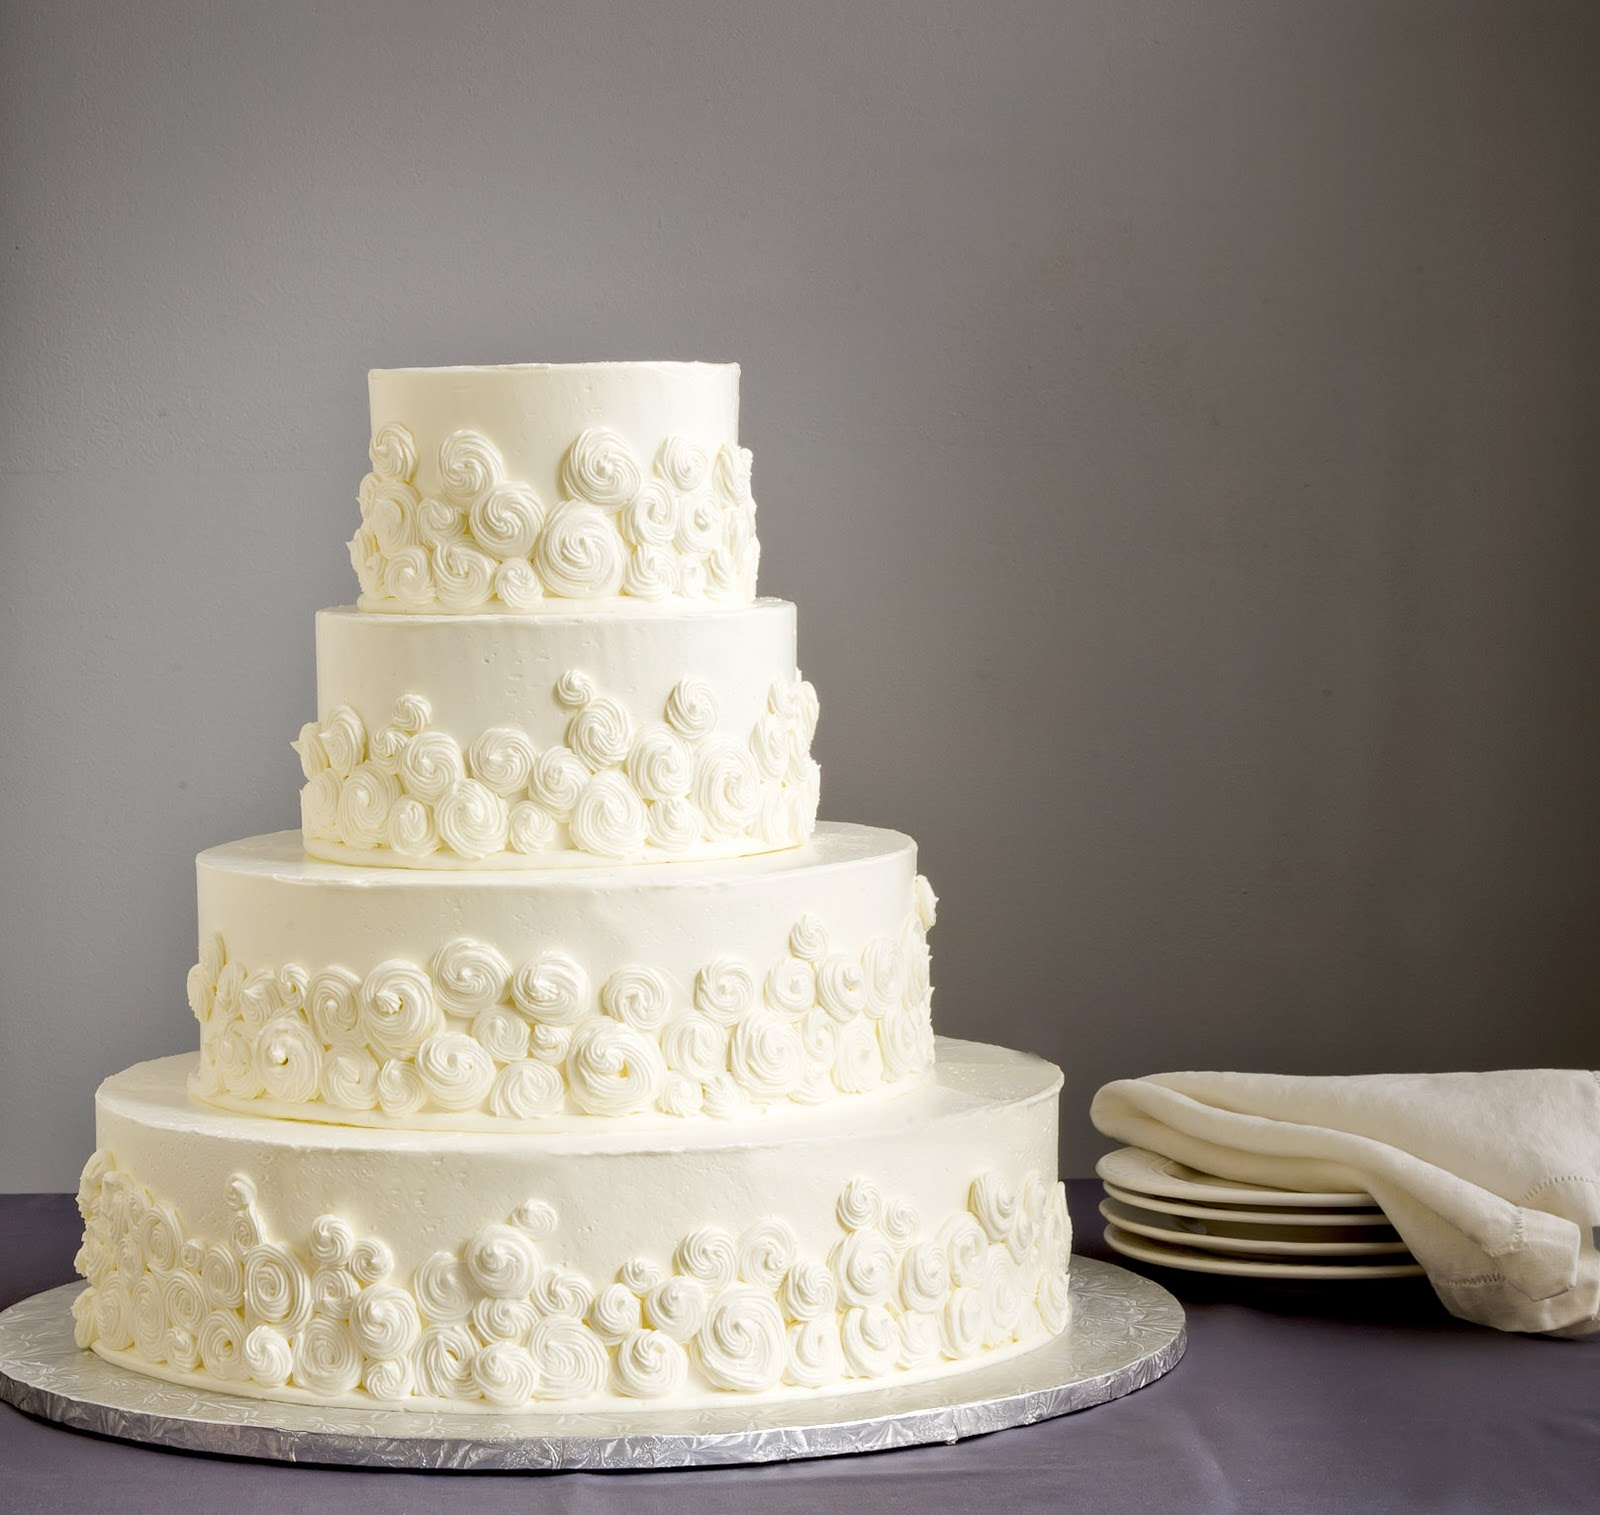 Cake Design Ideas Simple : A Simple Cake: THREE NEW Wedding Cake Ideas